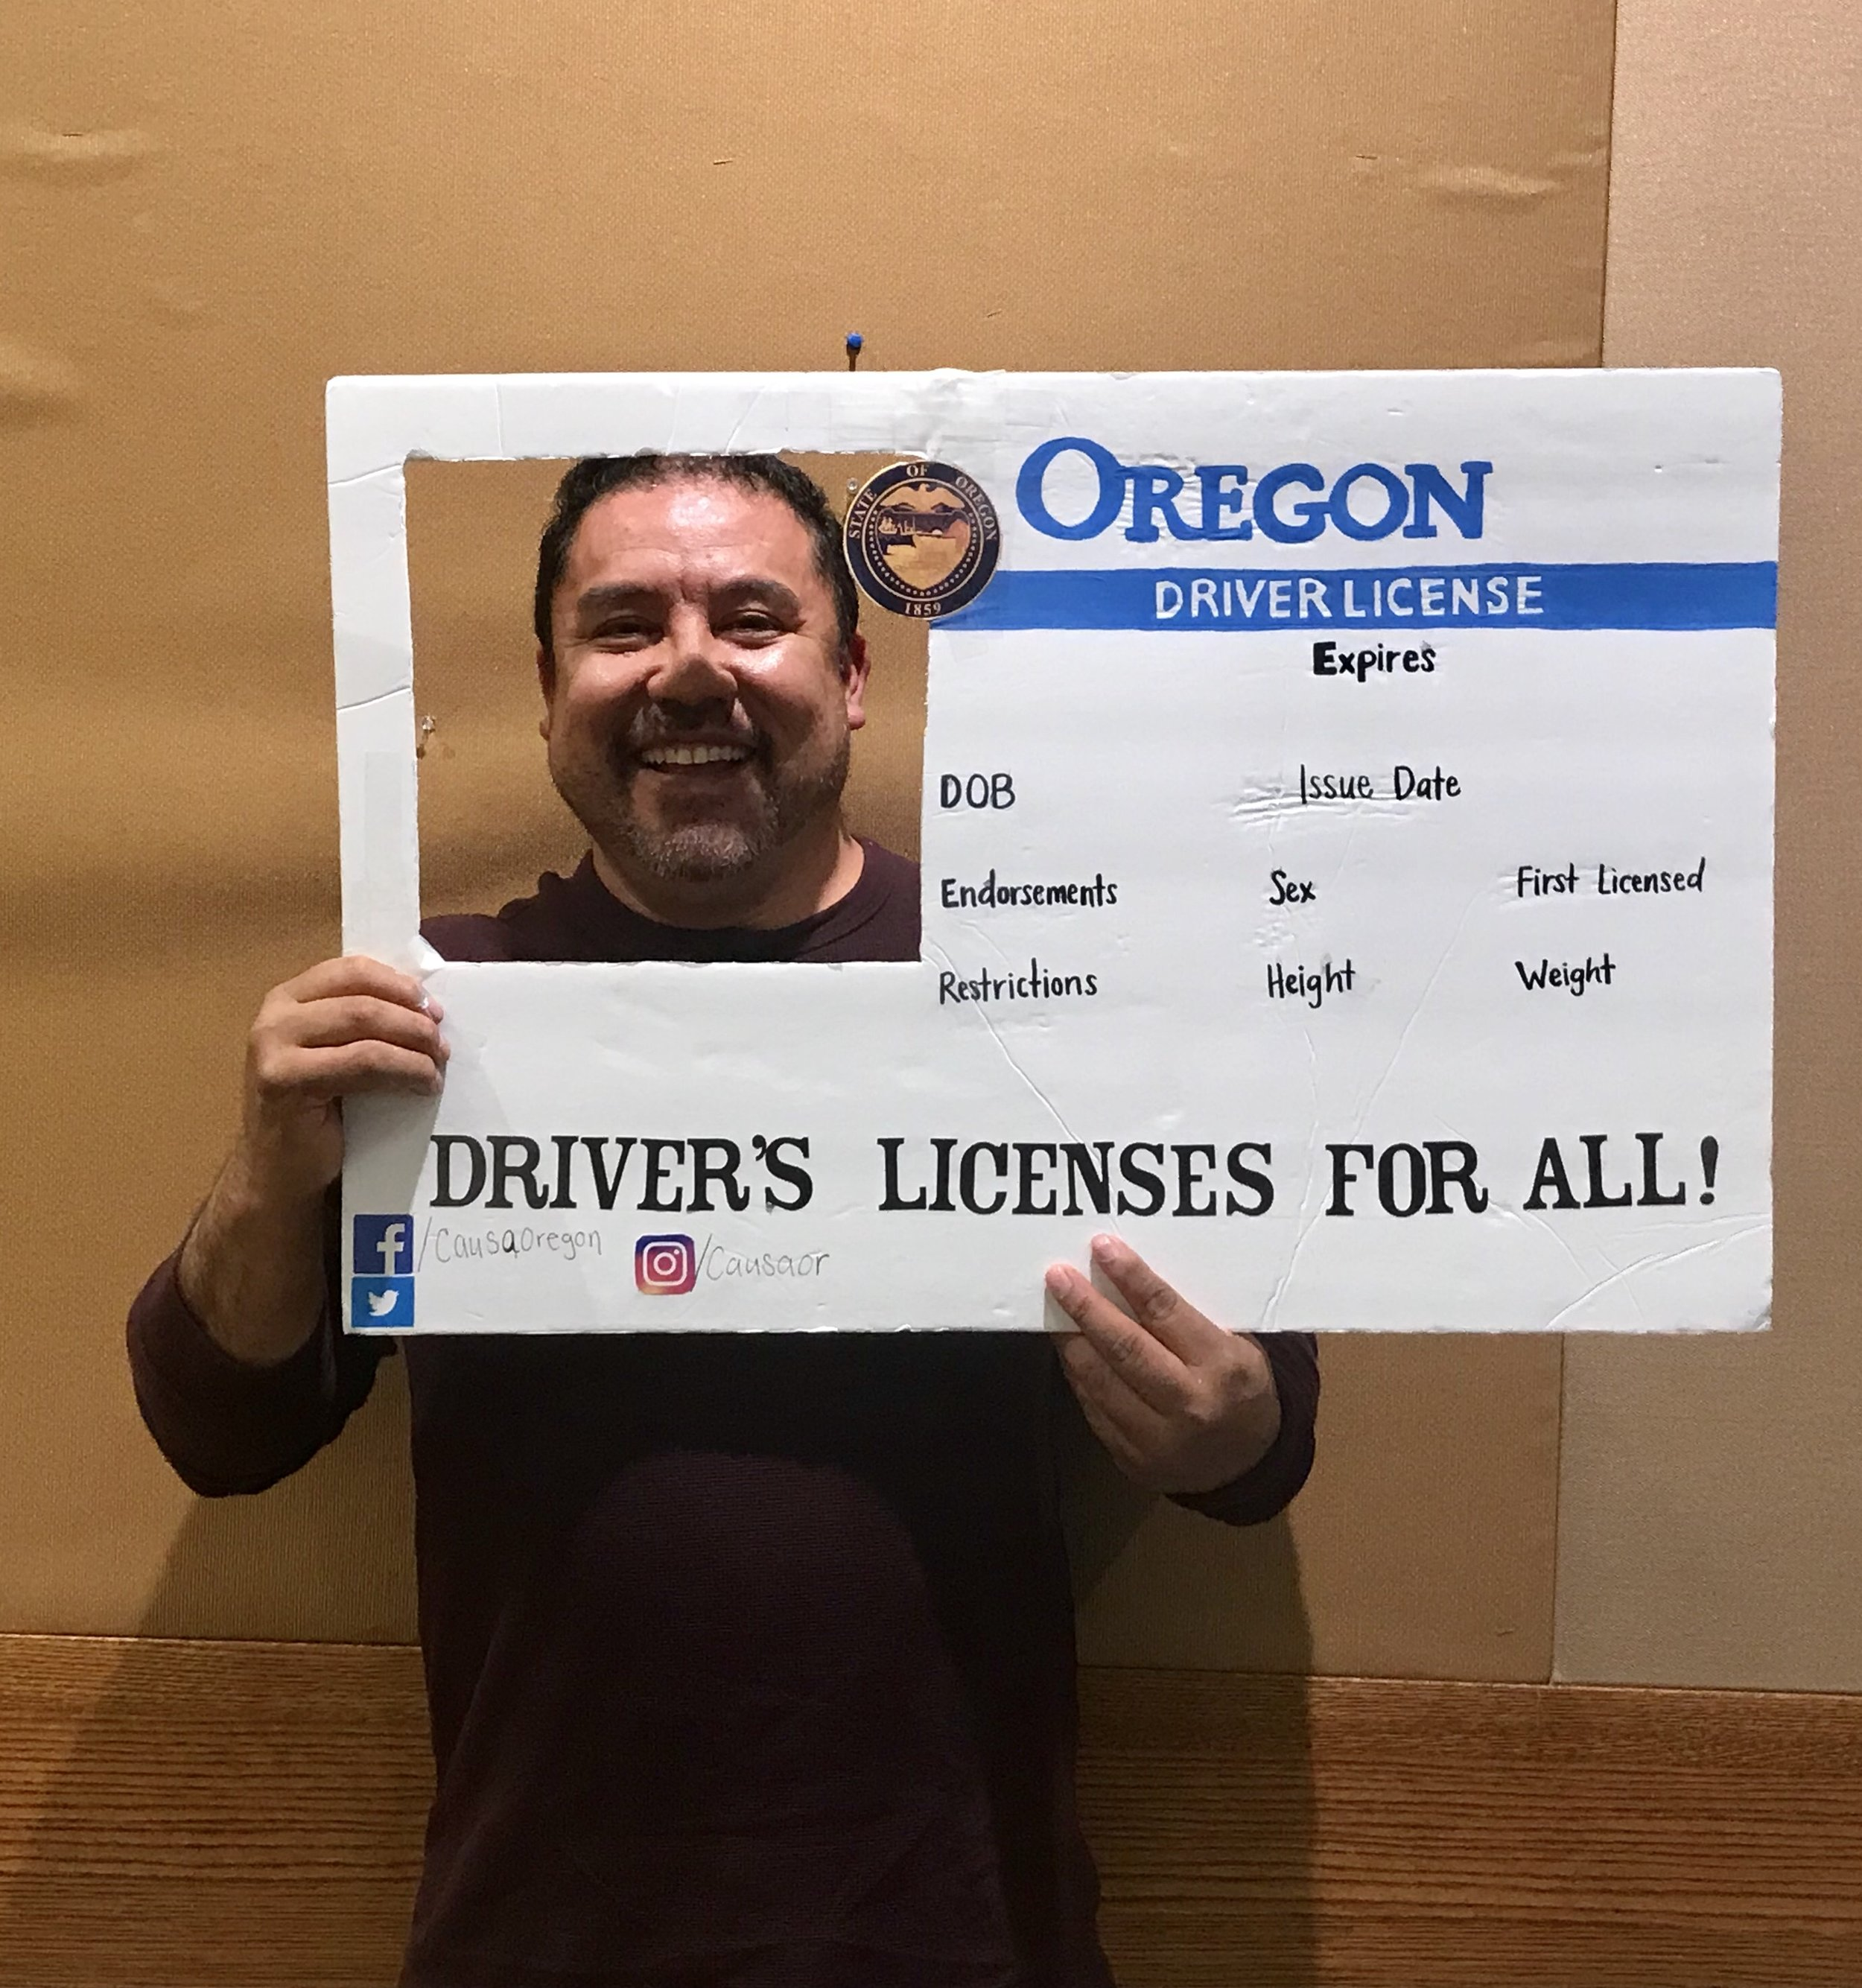 A parent holds up a poster decorated to look like a giant Oregon driver's license. His face is framed by a square cut-out in the upper left corner.